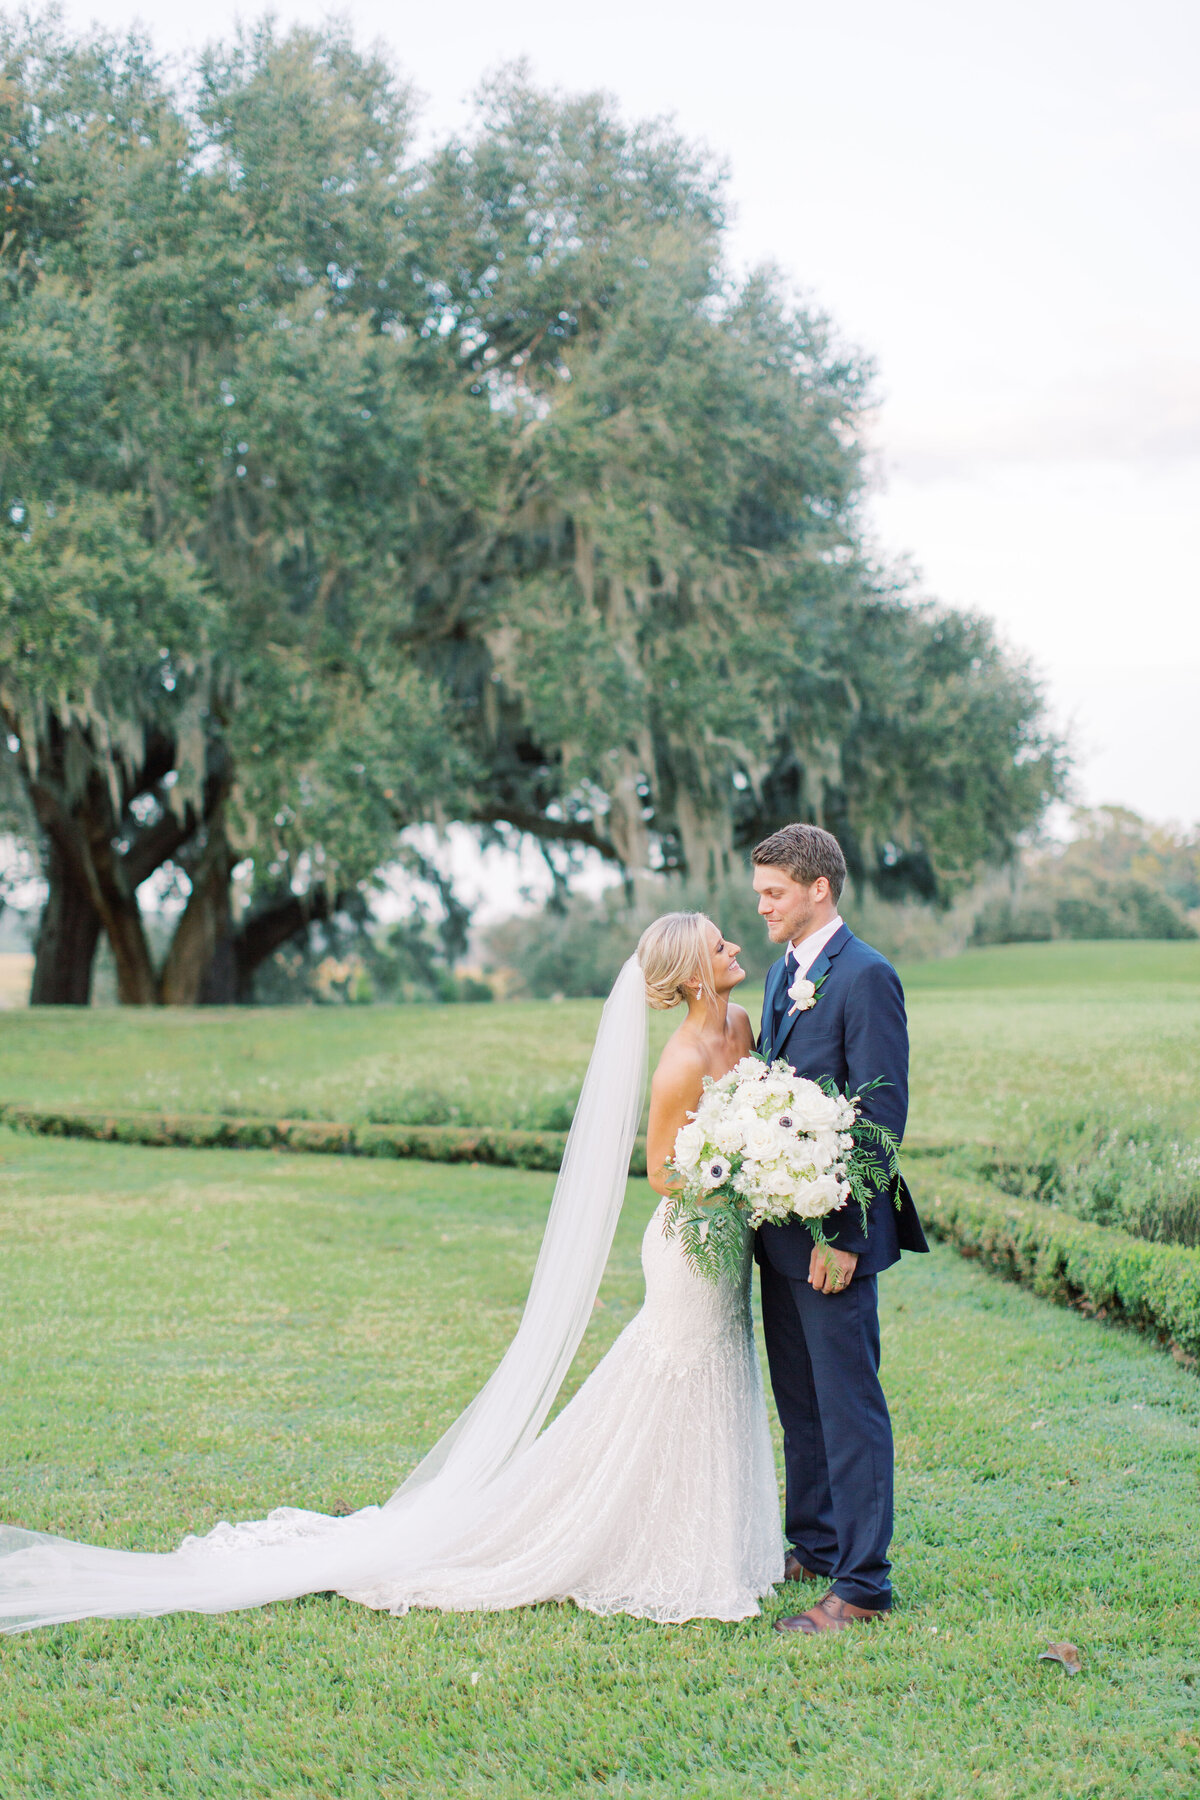 Melton_Wedding__Middleton_Place_Plantation_Charleston_South_Carolina_Jacksonville_Florida_Devon_Donnahoo_Photography__0769